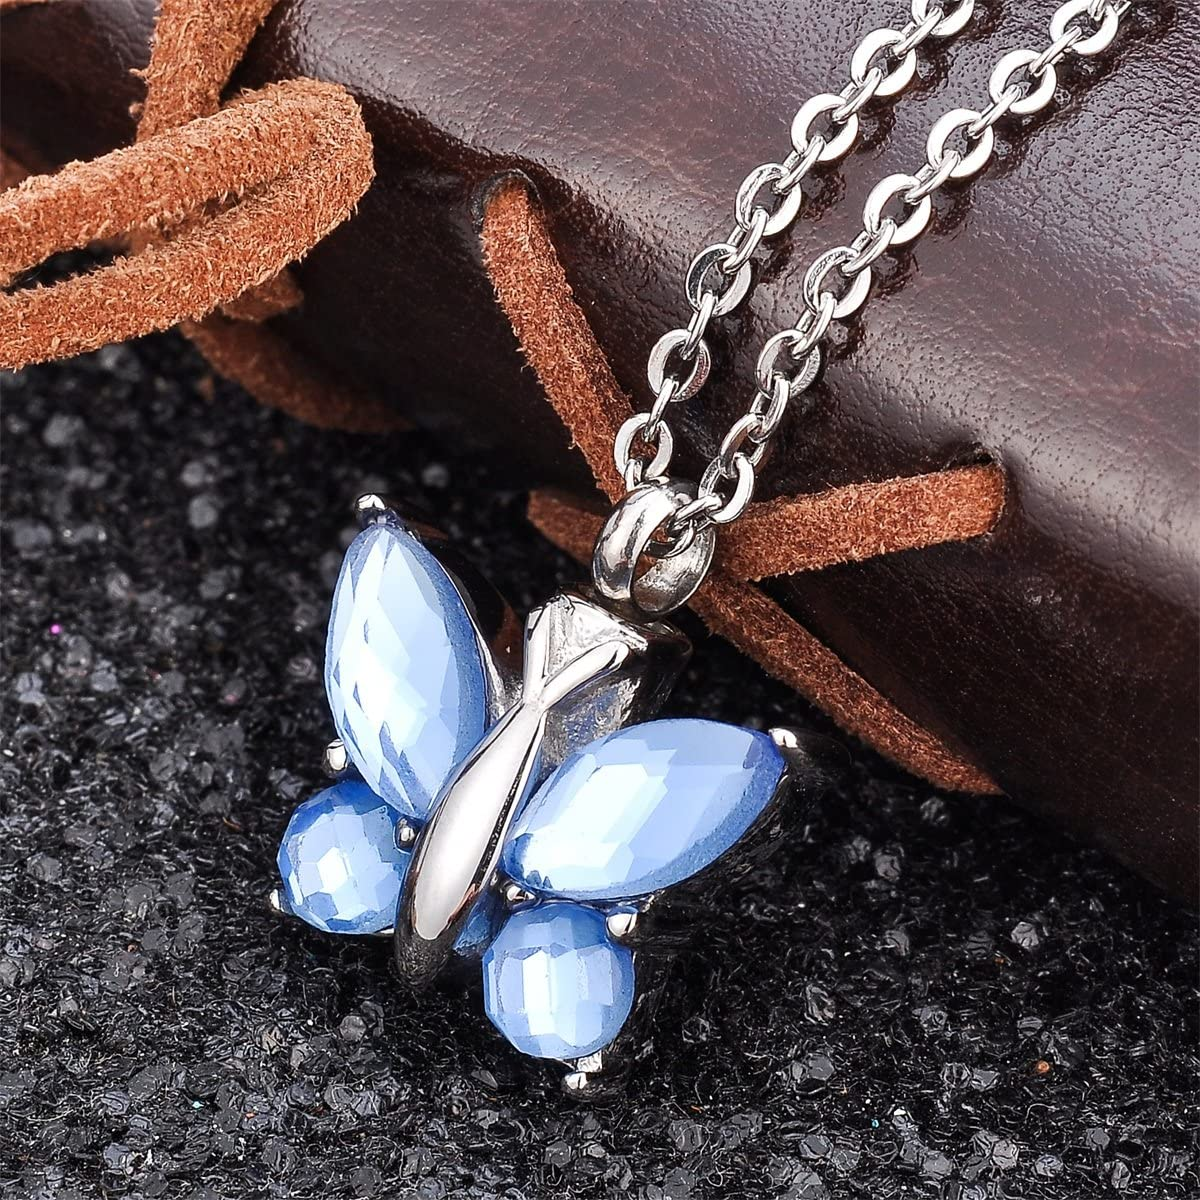 Valyria Cremation Jewelry Flying Butterfly Urn Pendant Keepsake Memorial Necklace